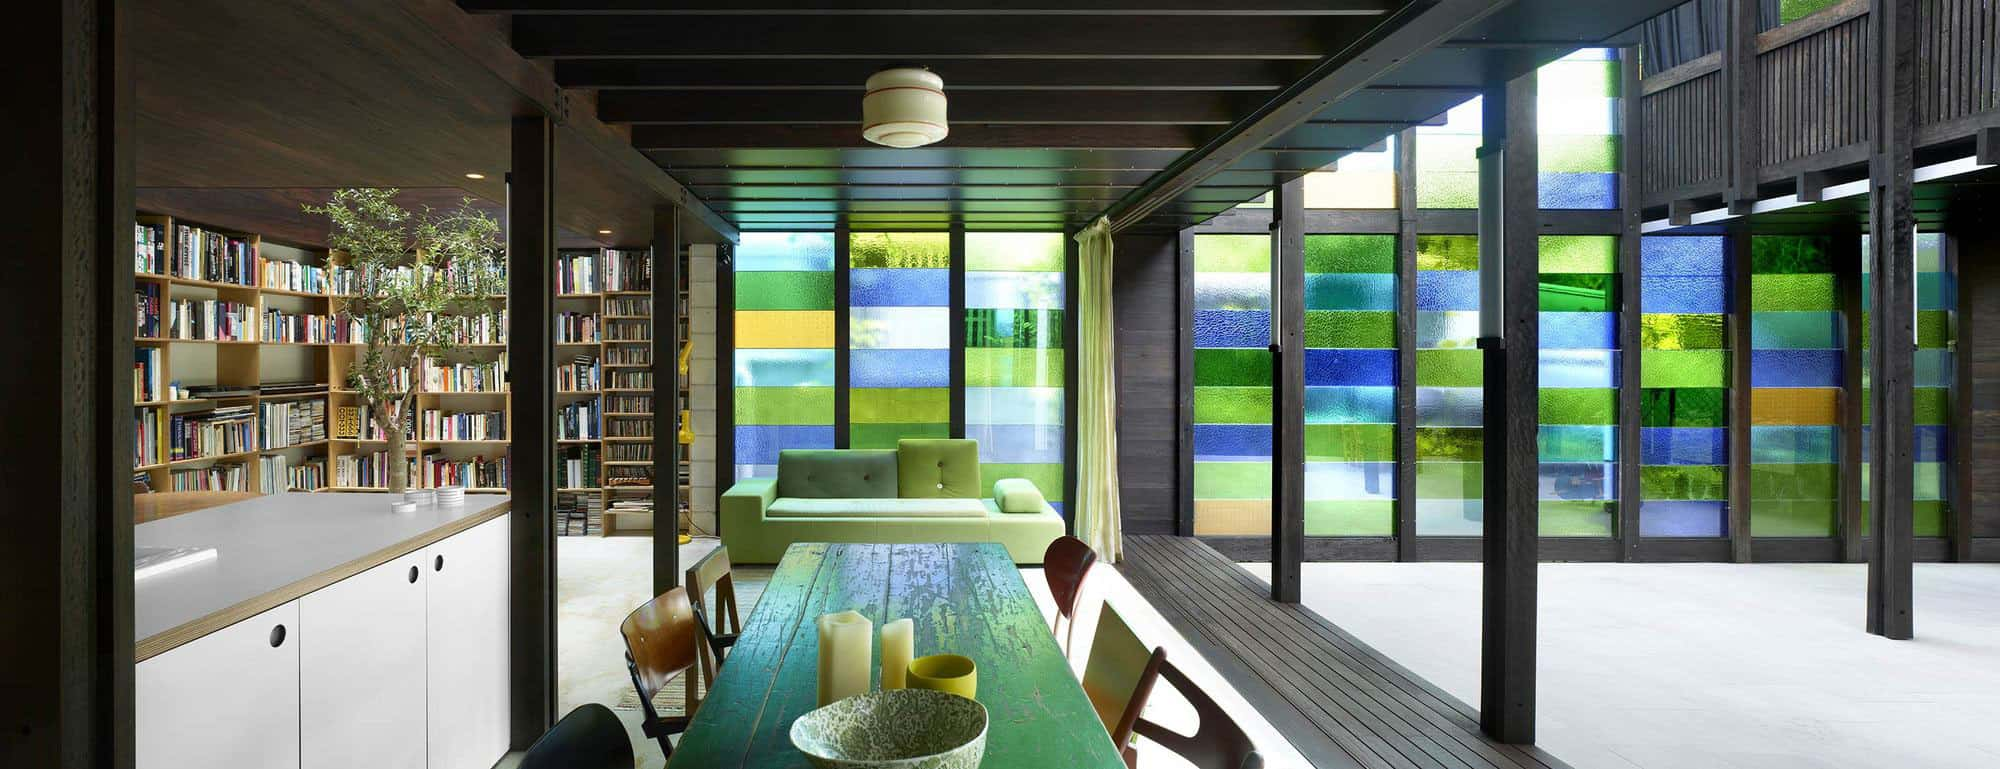 Cottage with Colored Glass Walls and Preexisting Trees